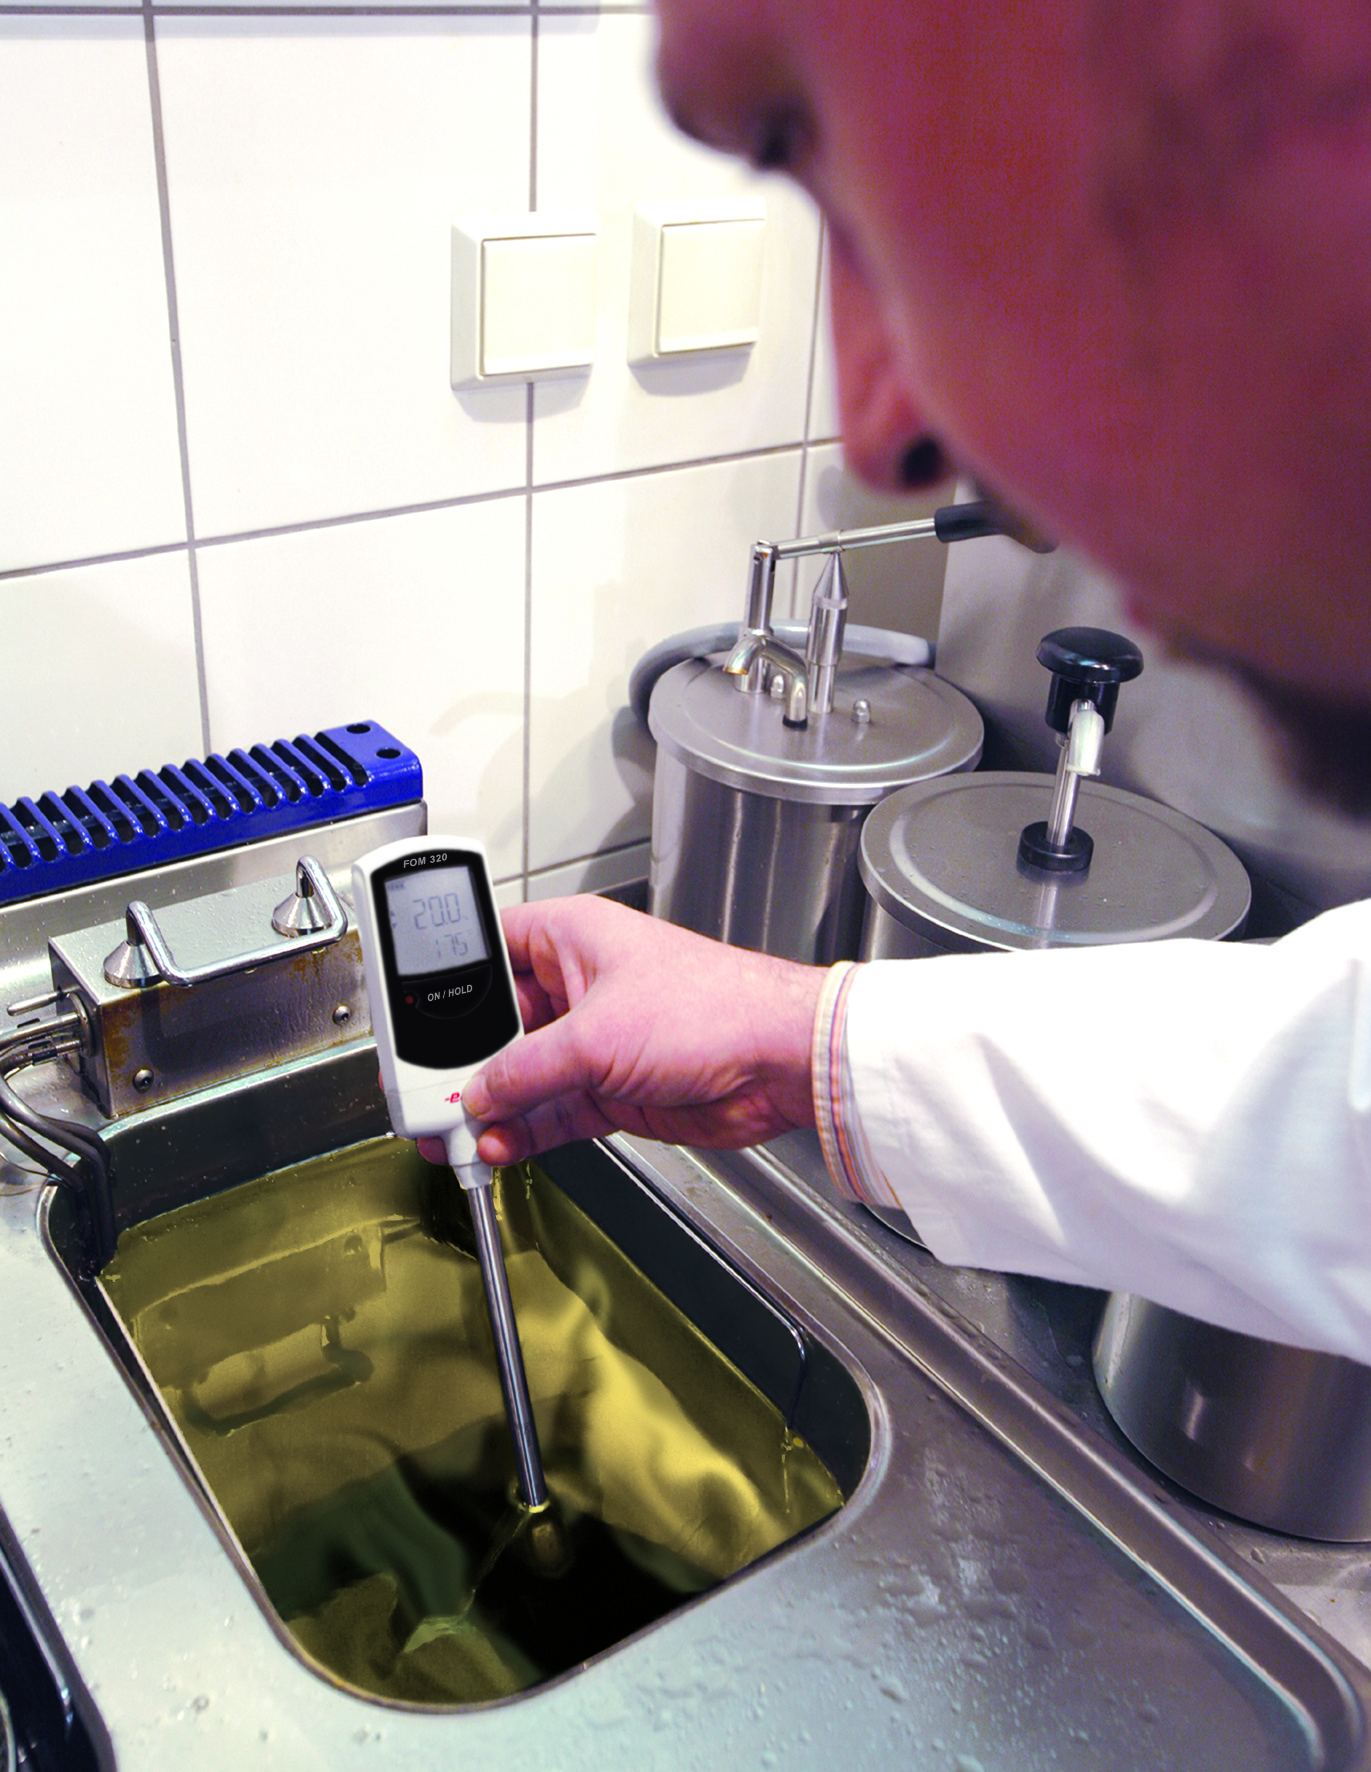 Ebro FOM 320 in use to test frying oil